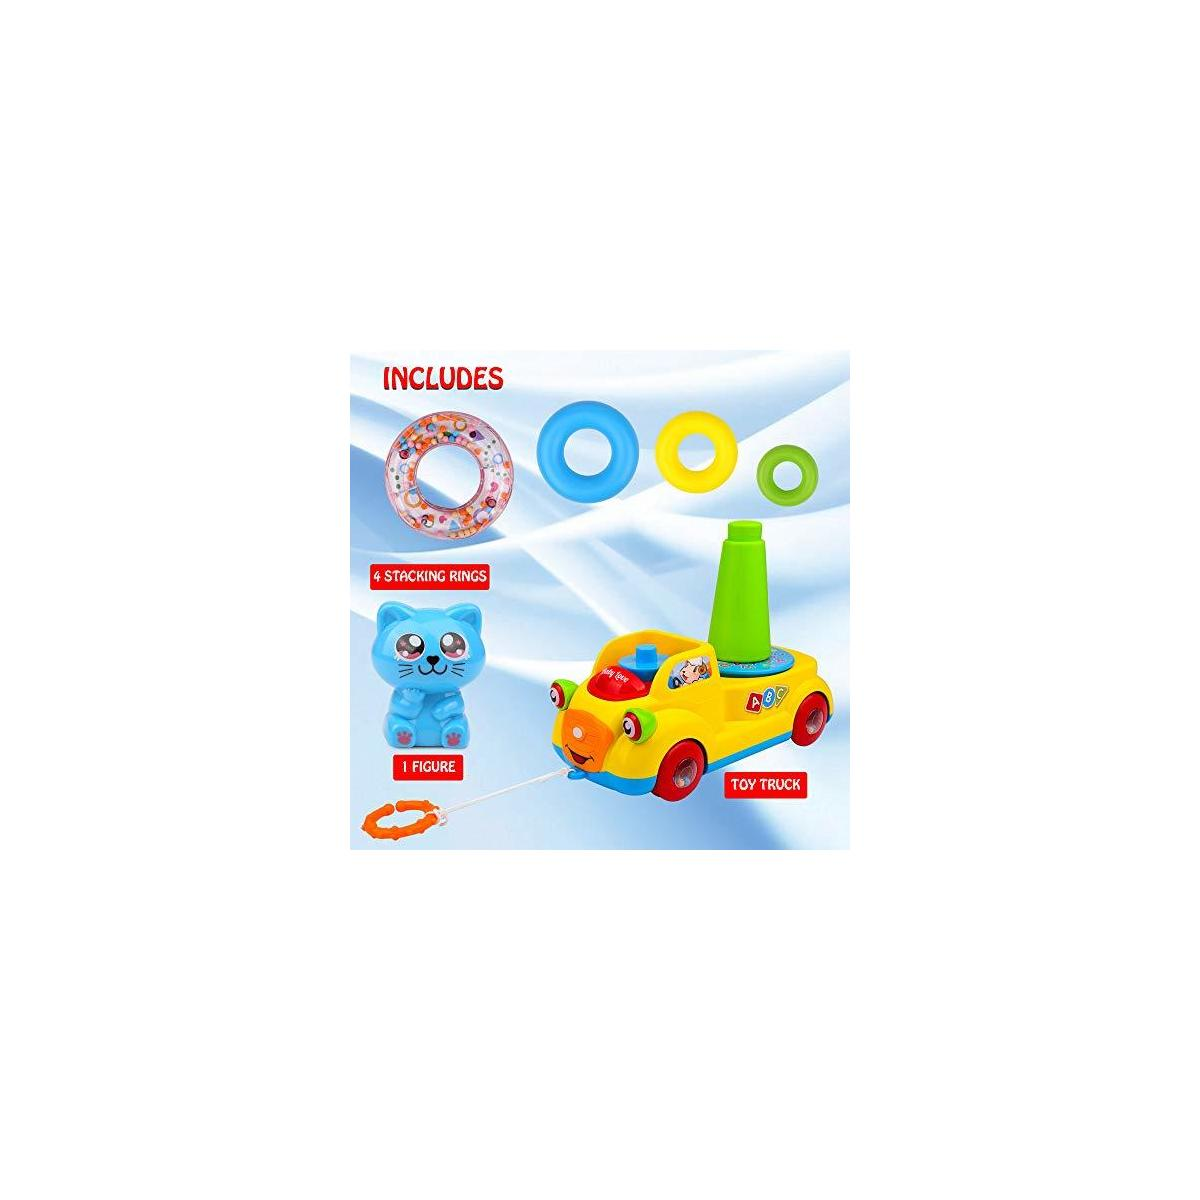 Playkidz Stackable Rings and Pull Along Toy Bus for Toddlers - Sensory and Educational Toy for Girls and Boys Ages 3+, Great Birthday Gift